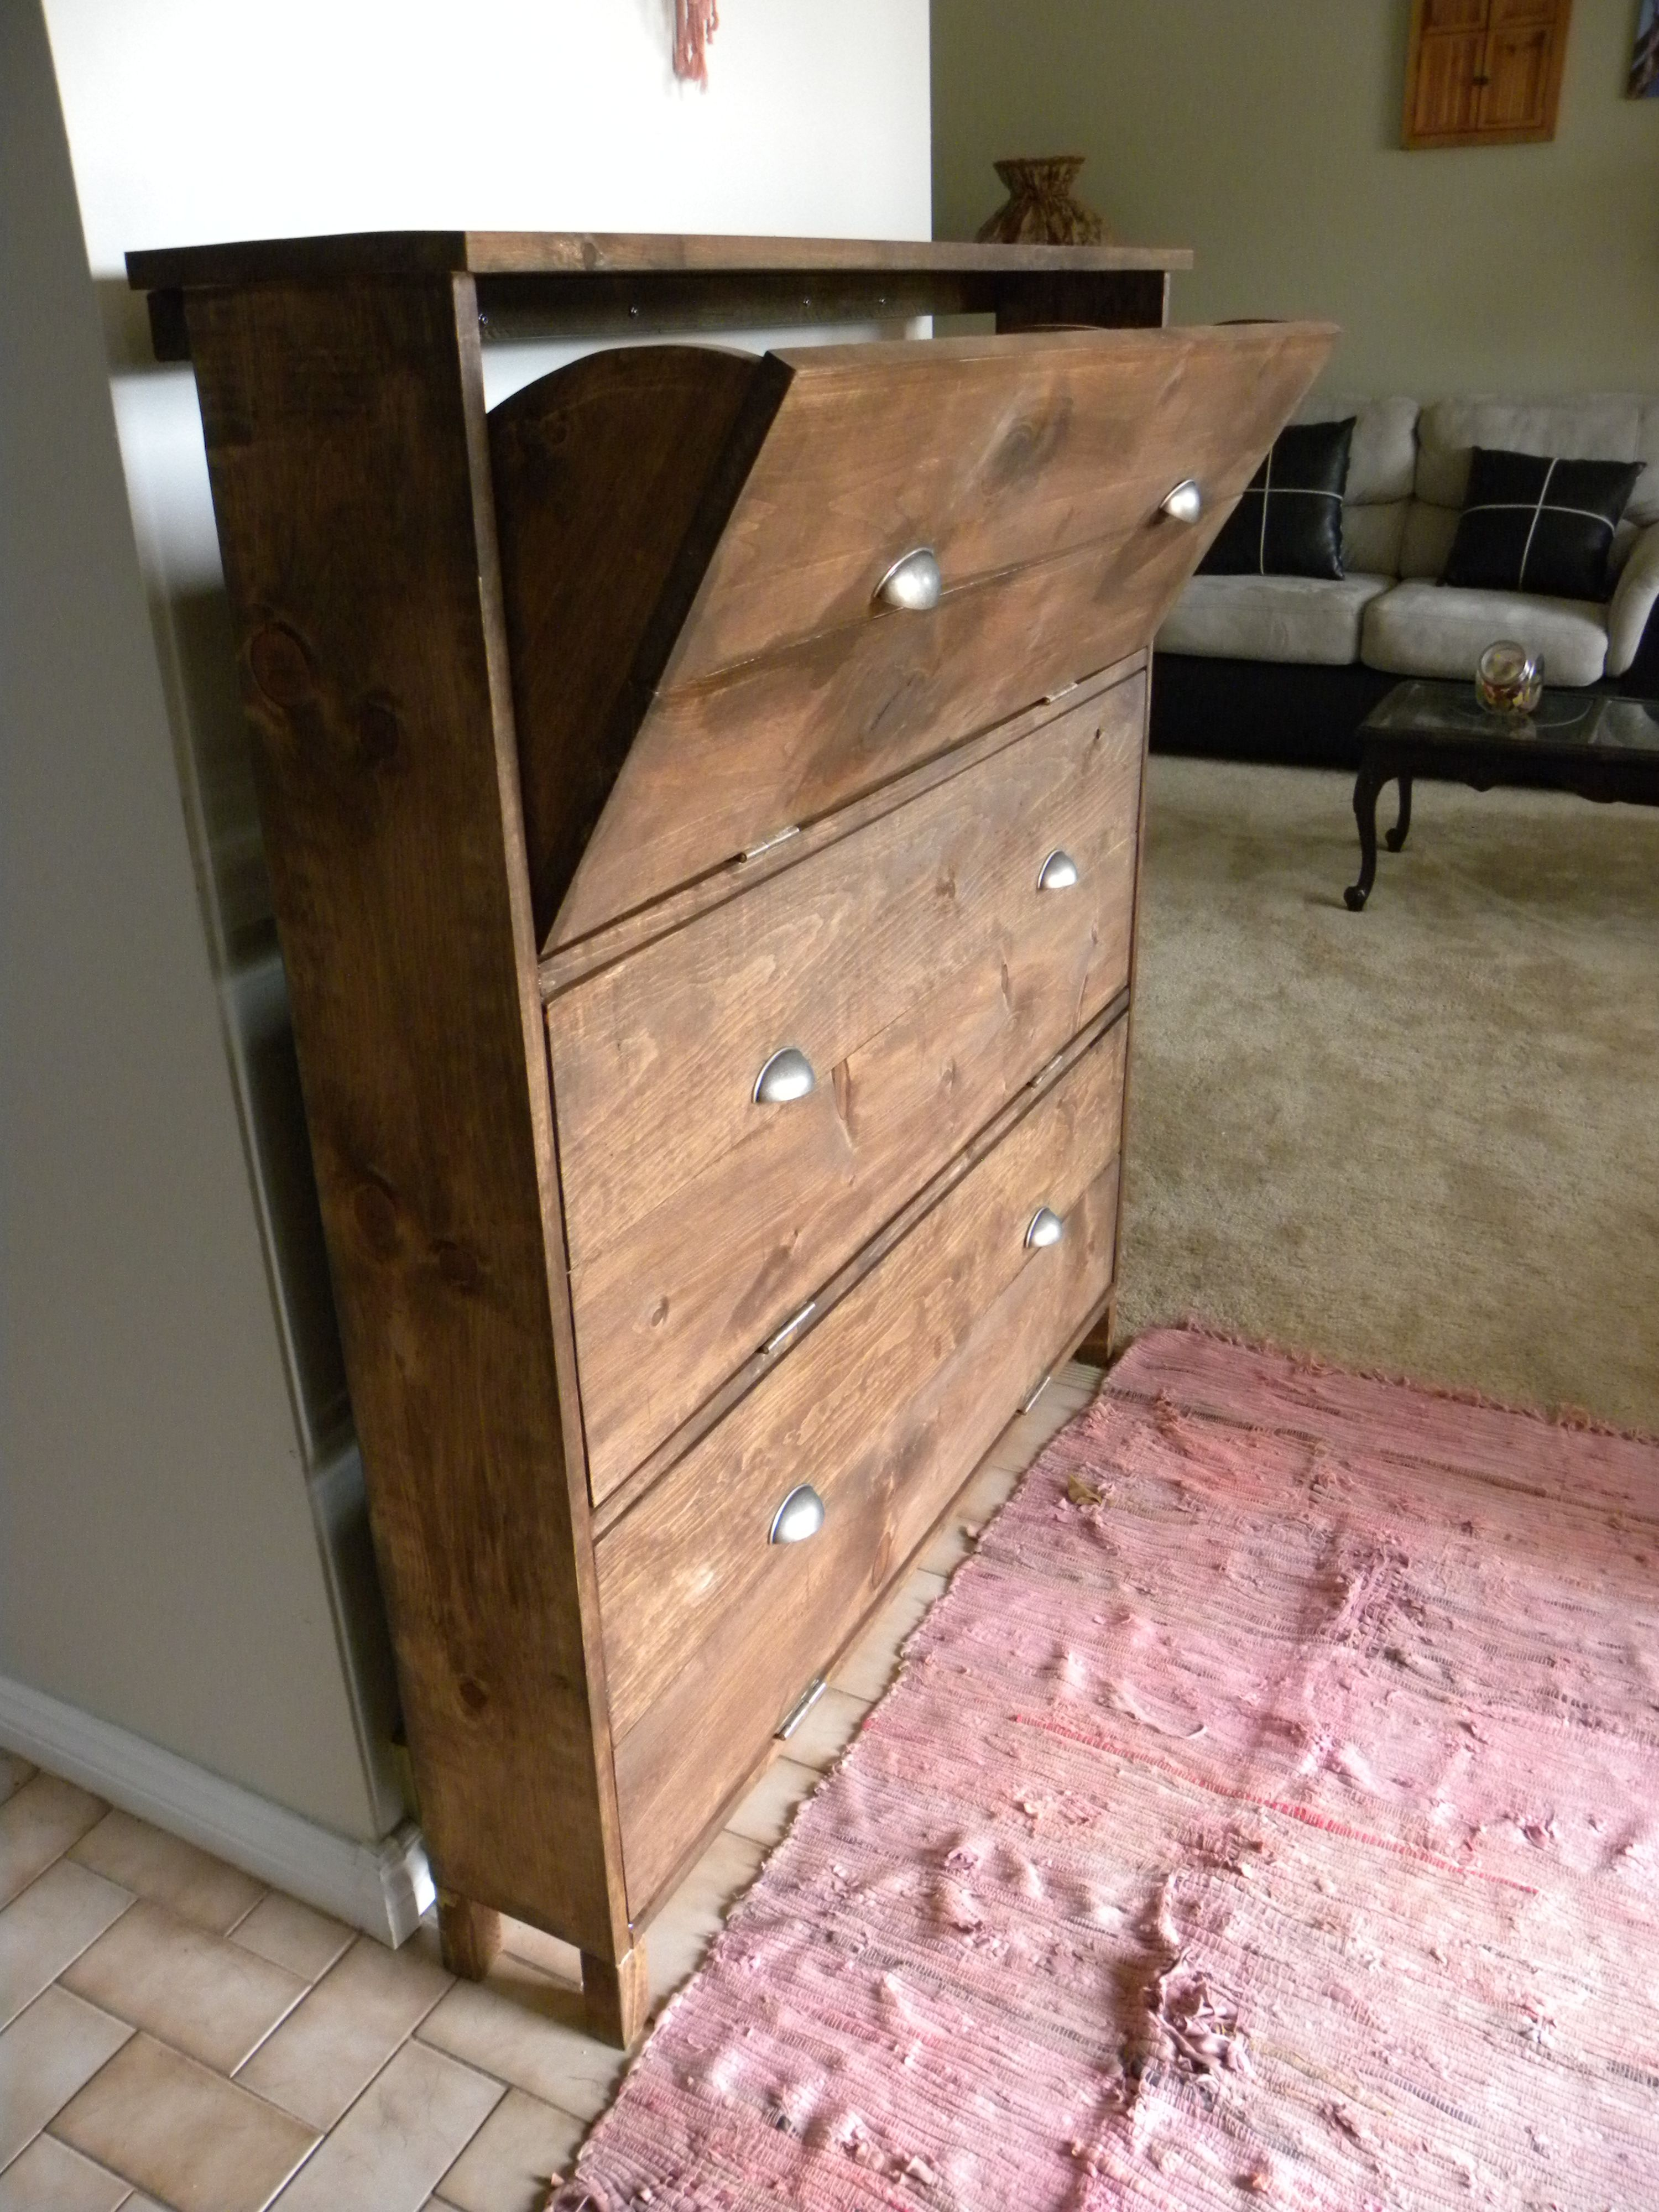 Shoe dresser do it yourself home projects from ana white shoe dresser diy projects solutioingenieria Images